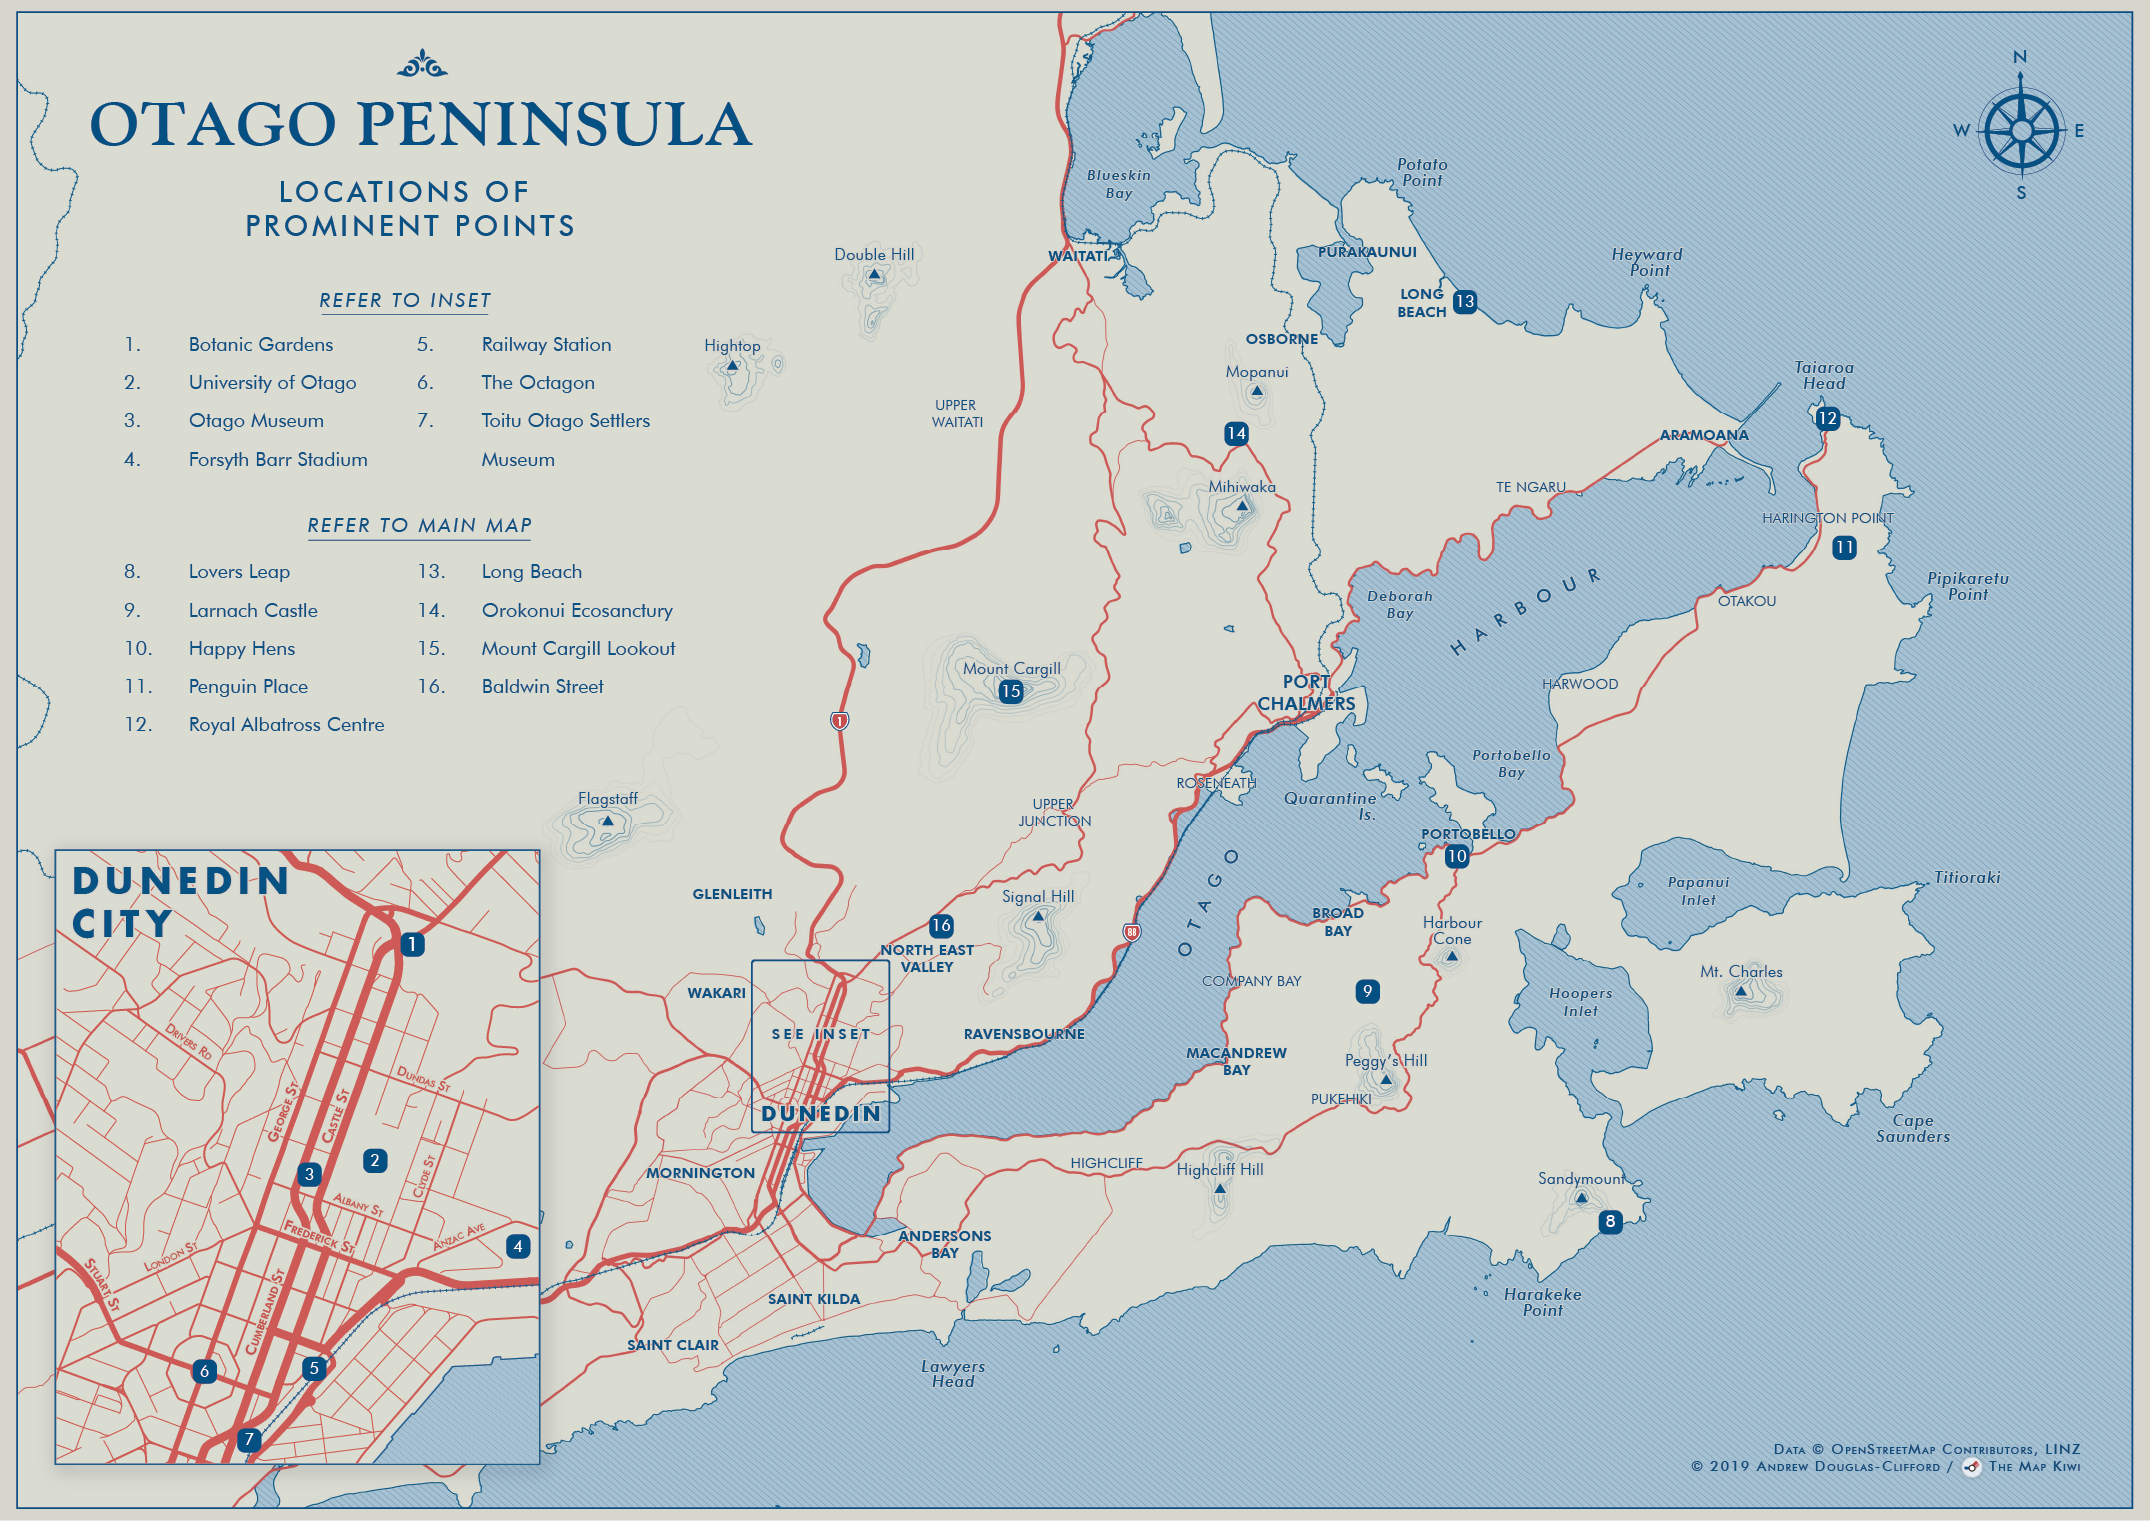 Otago Peninsula Tourist Map